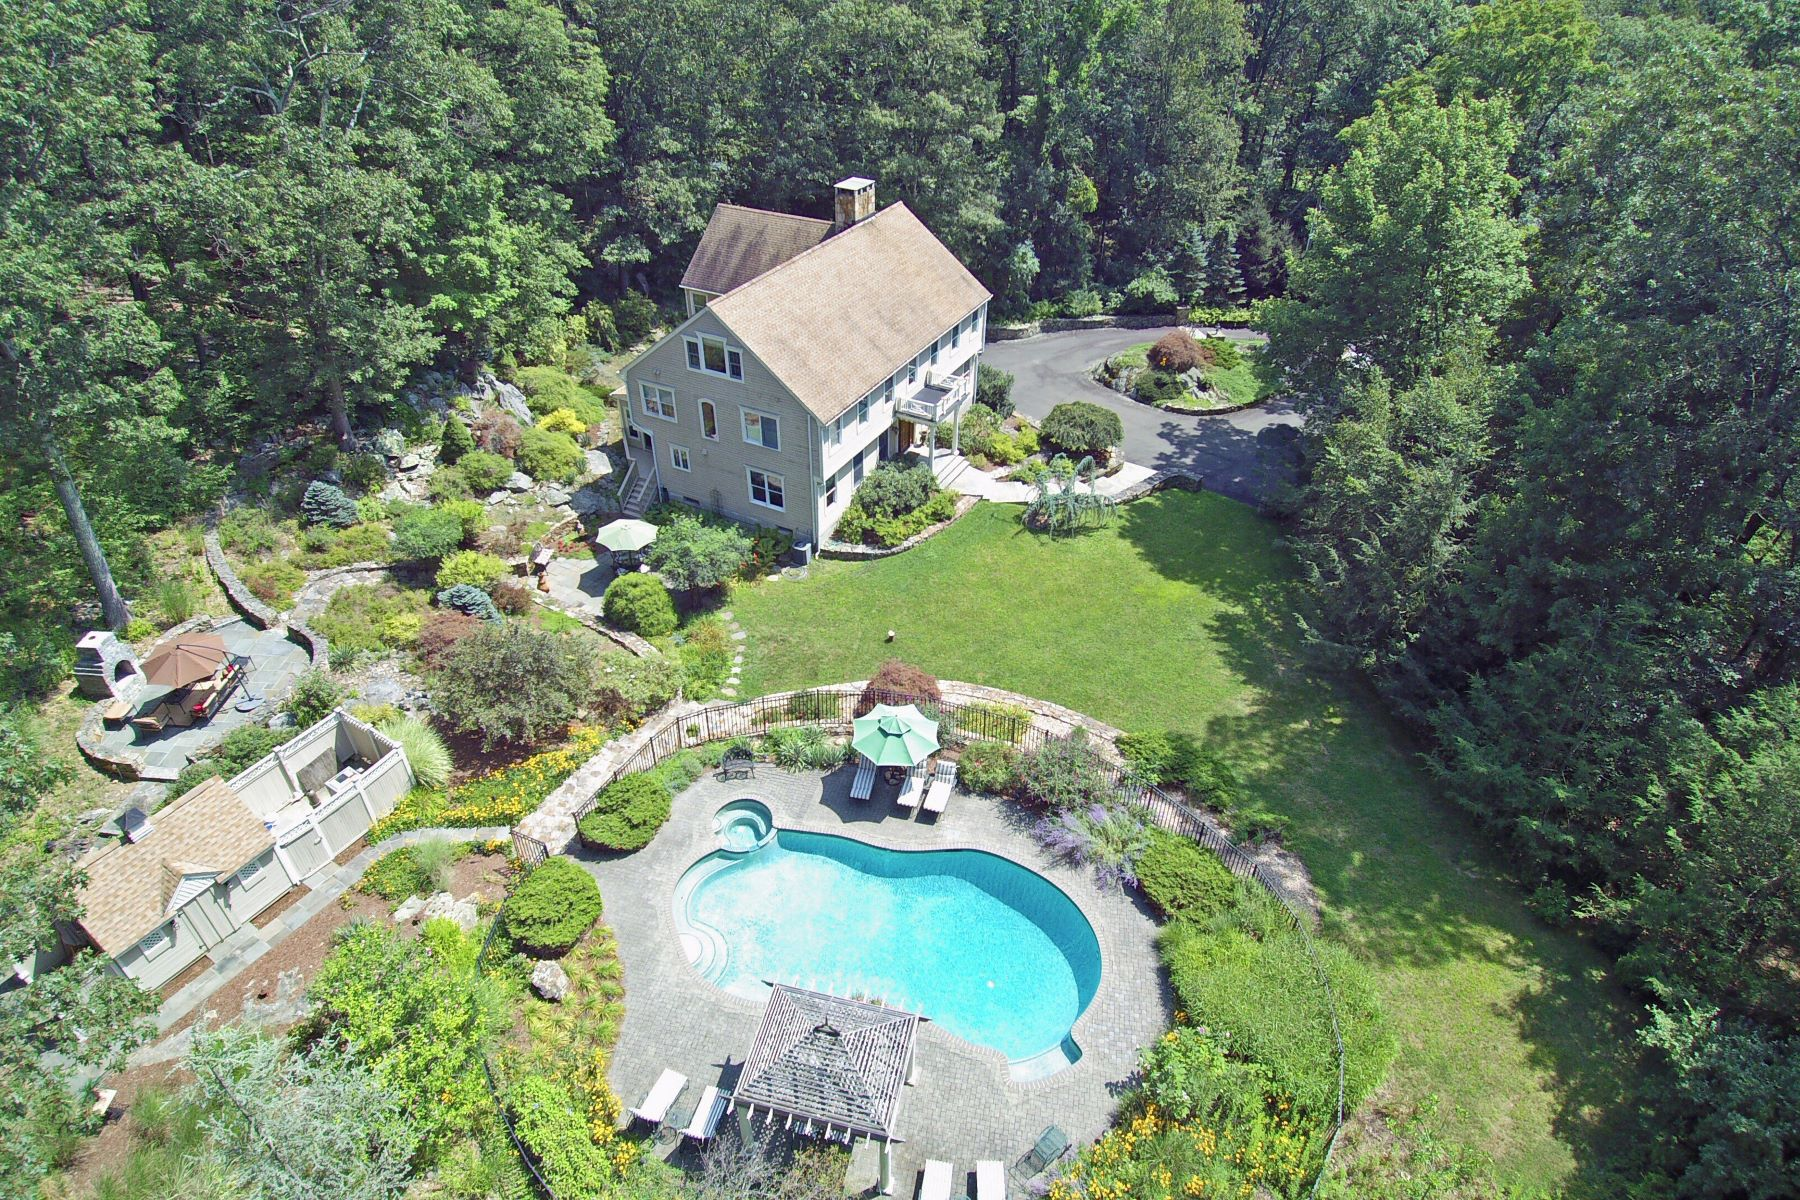 Casa Unifamiliar por un Venta en Exceptional Country Compound 356 Black Rock Turnpike Redding, Connecticut 06896 Estados Unidos